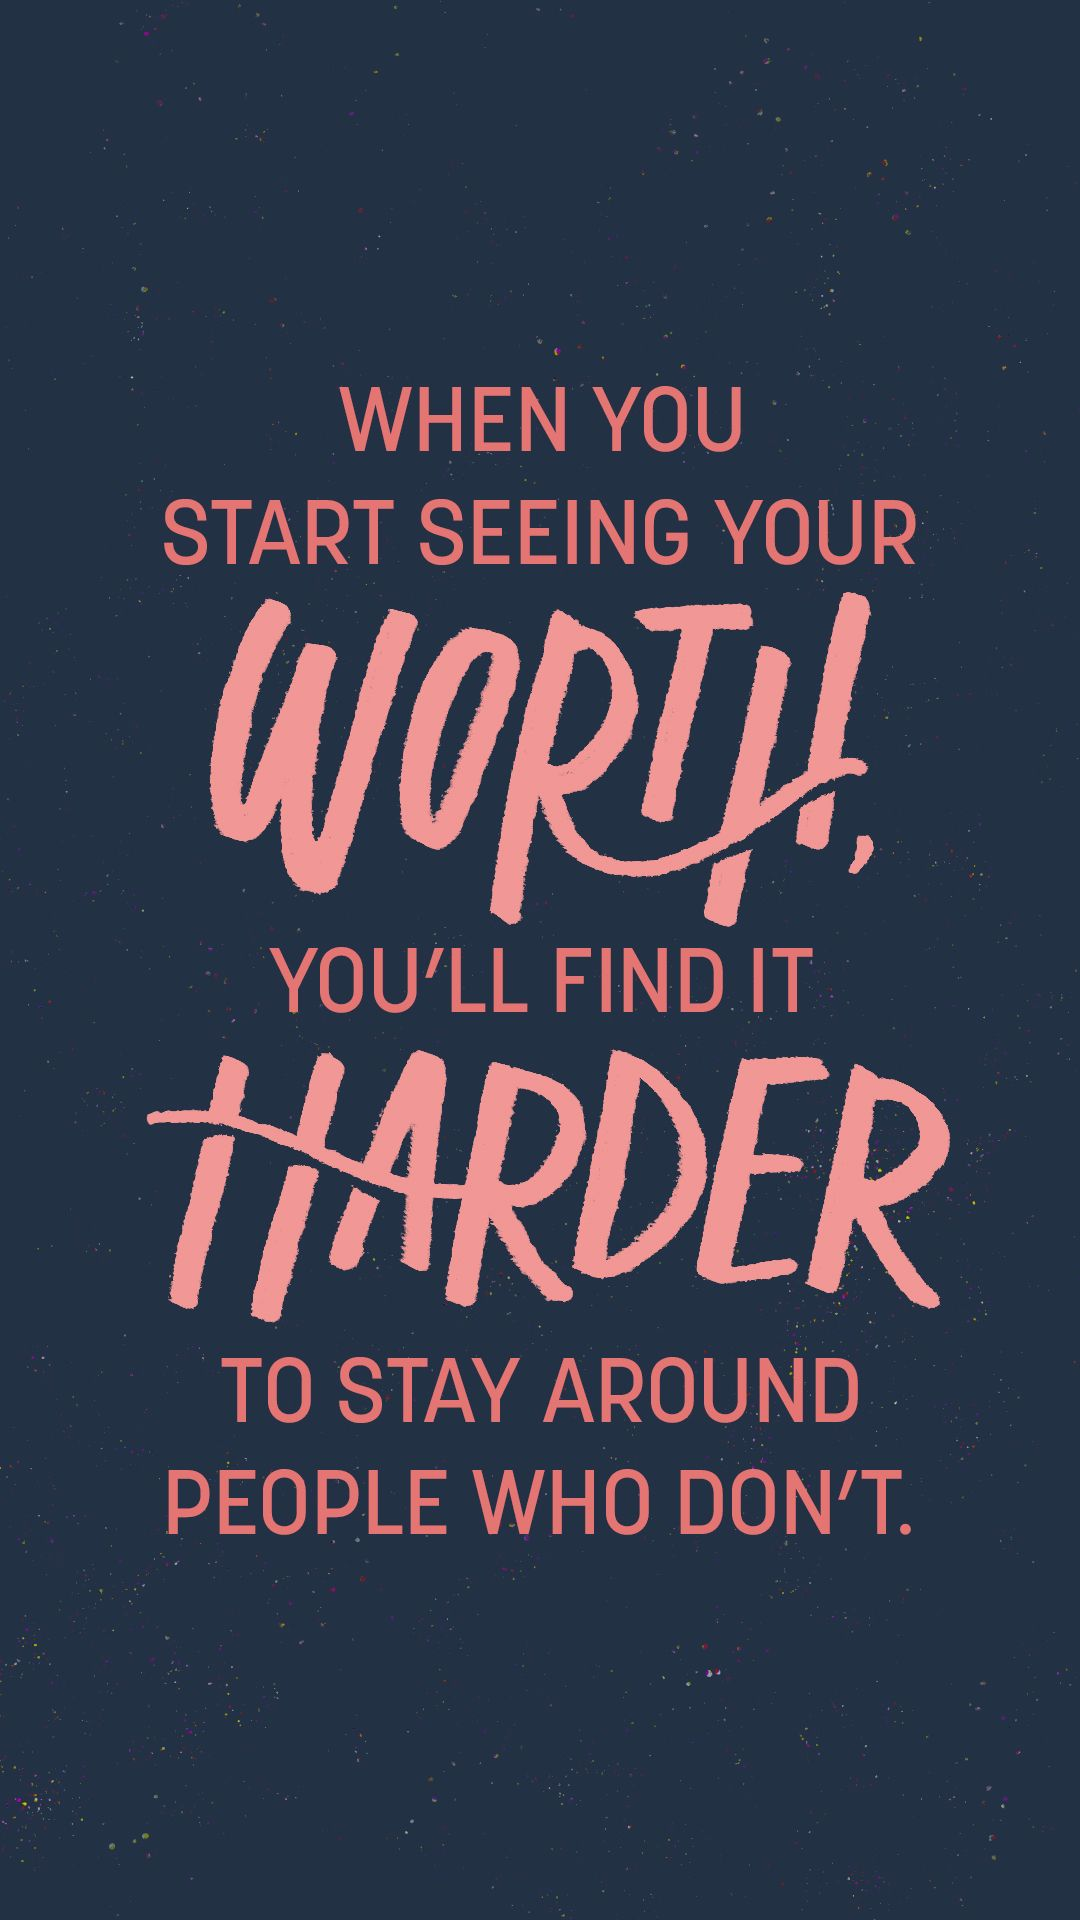 [Image] It's important to recognize your self-worth. Failing to do so will never let you realize your full potential.